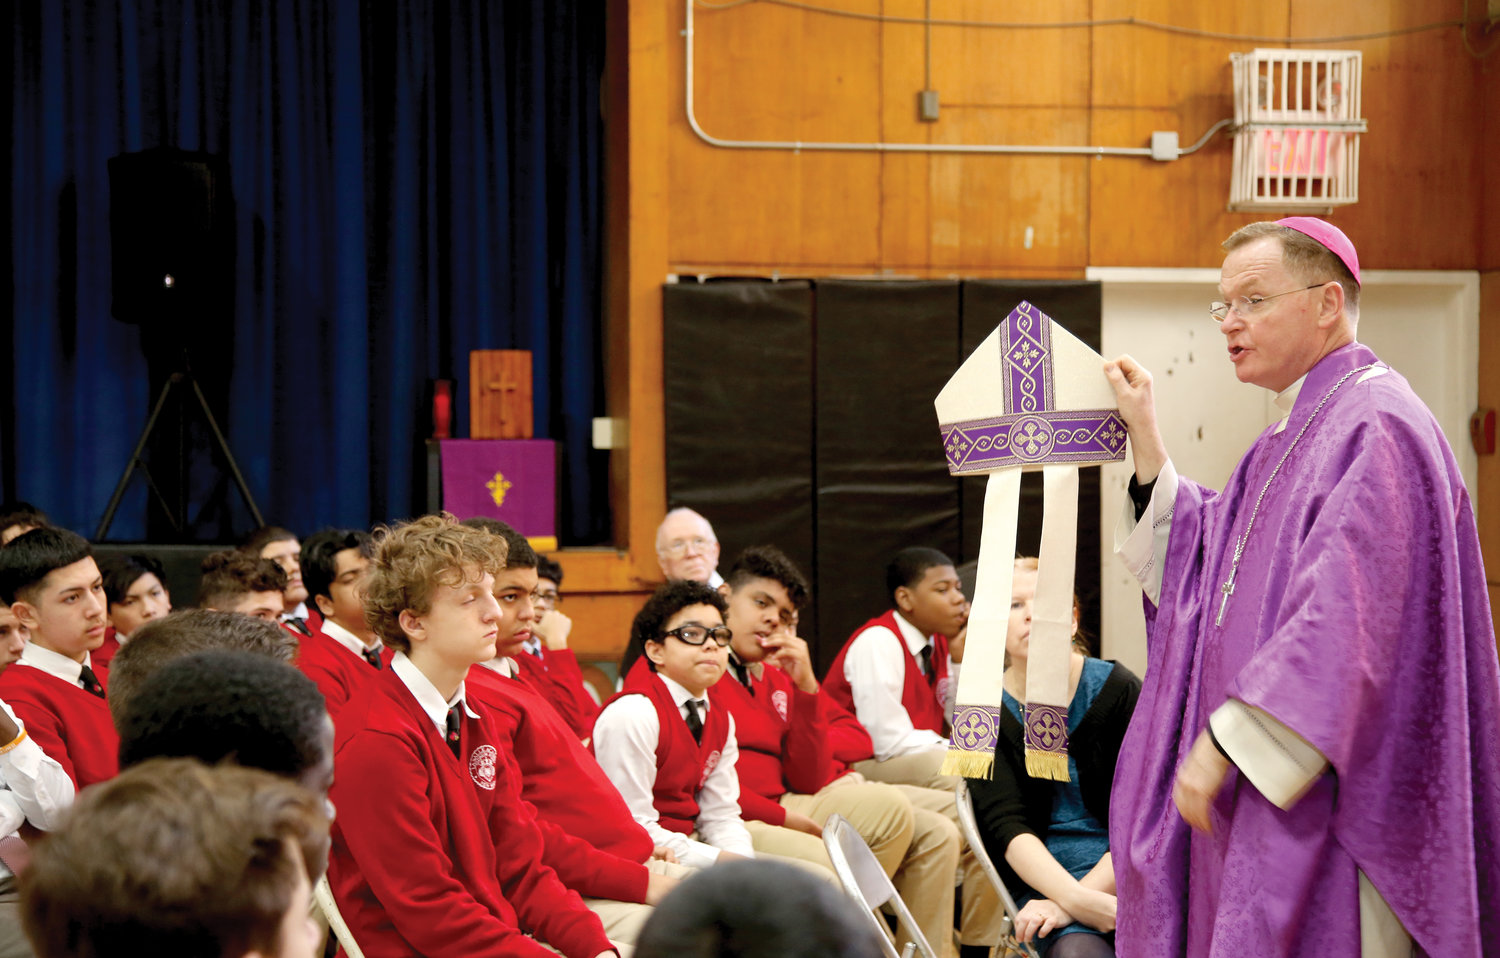 Bishop Whalen, holding up his miter, also gave a lesson to the freshman class about the vestments worn by bishops.